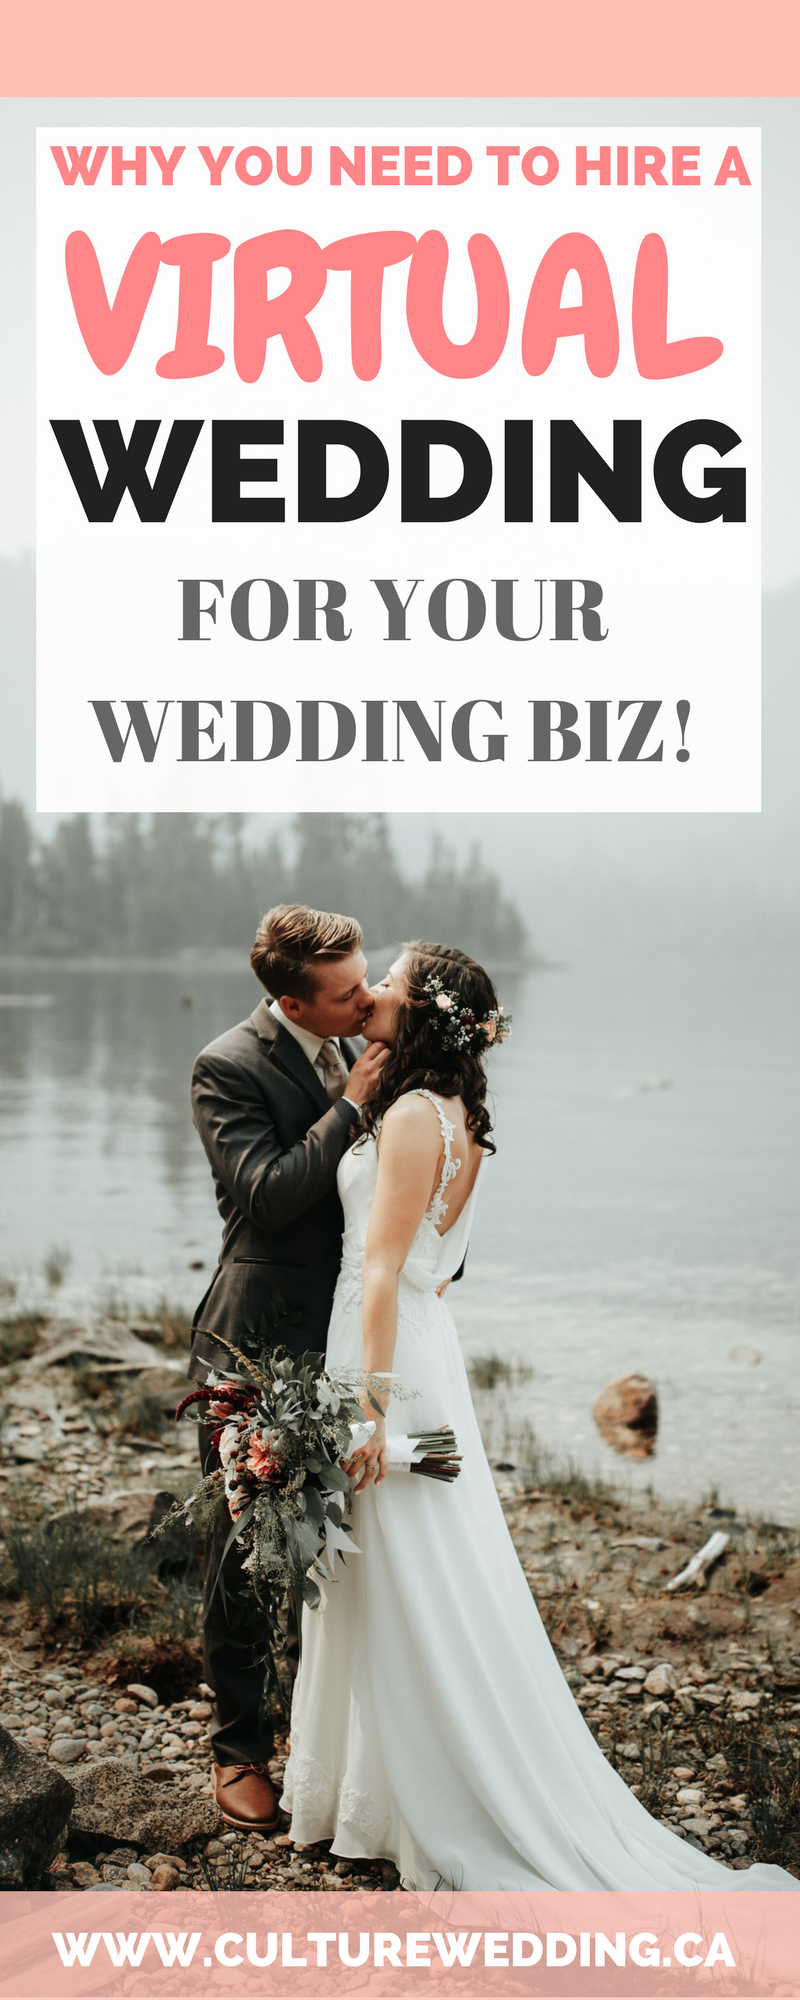 Why You Need to Hire a Virtual Assistant for Your Wedding Business